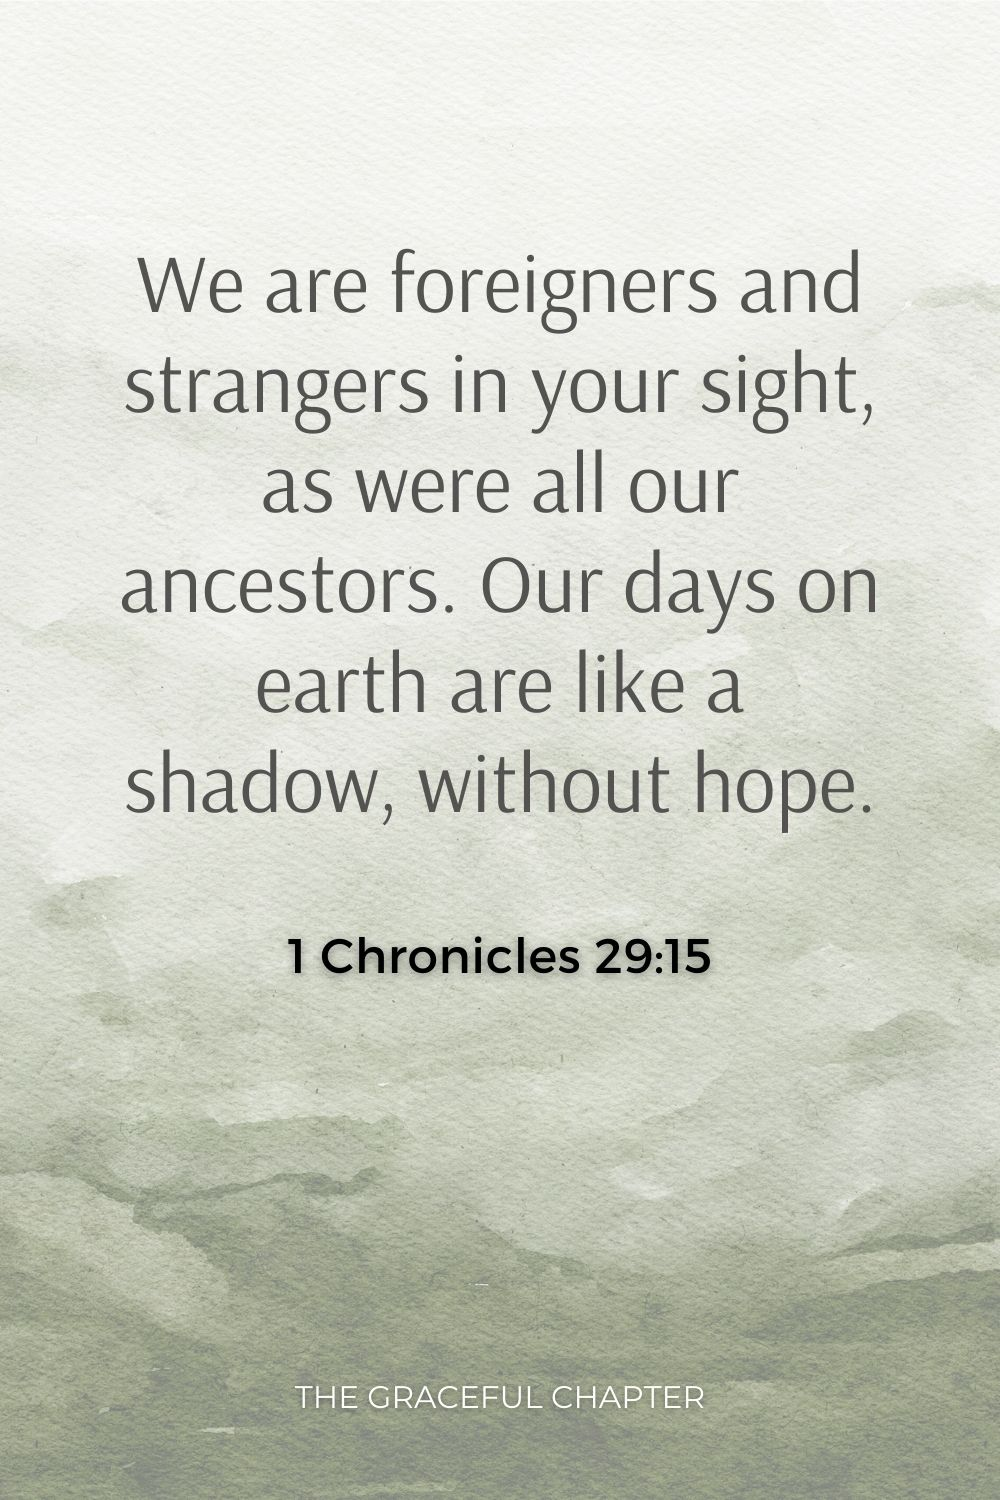 We are foreigners and strangers in your sight, as were all our ancestors. Our days on earth are like a shadow, without hope. 1 Chronicles 29:15